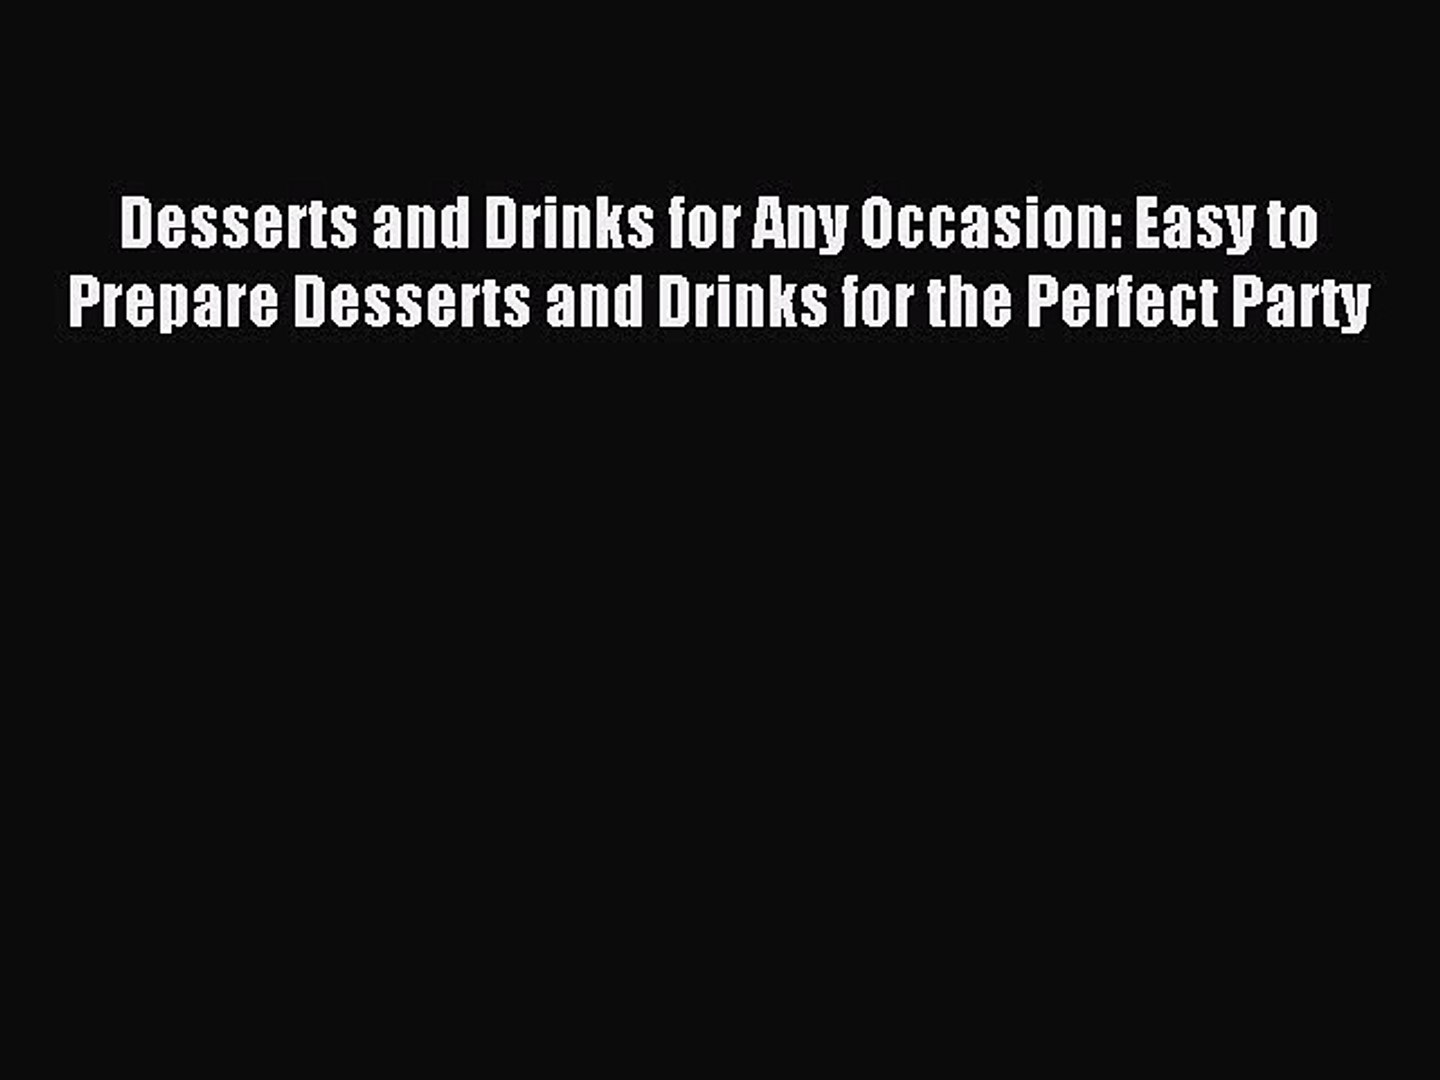 Read Desserts and Drinks for Any Occasion: Easy to Prepare Desserts and Drinks for the Perfect